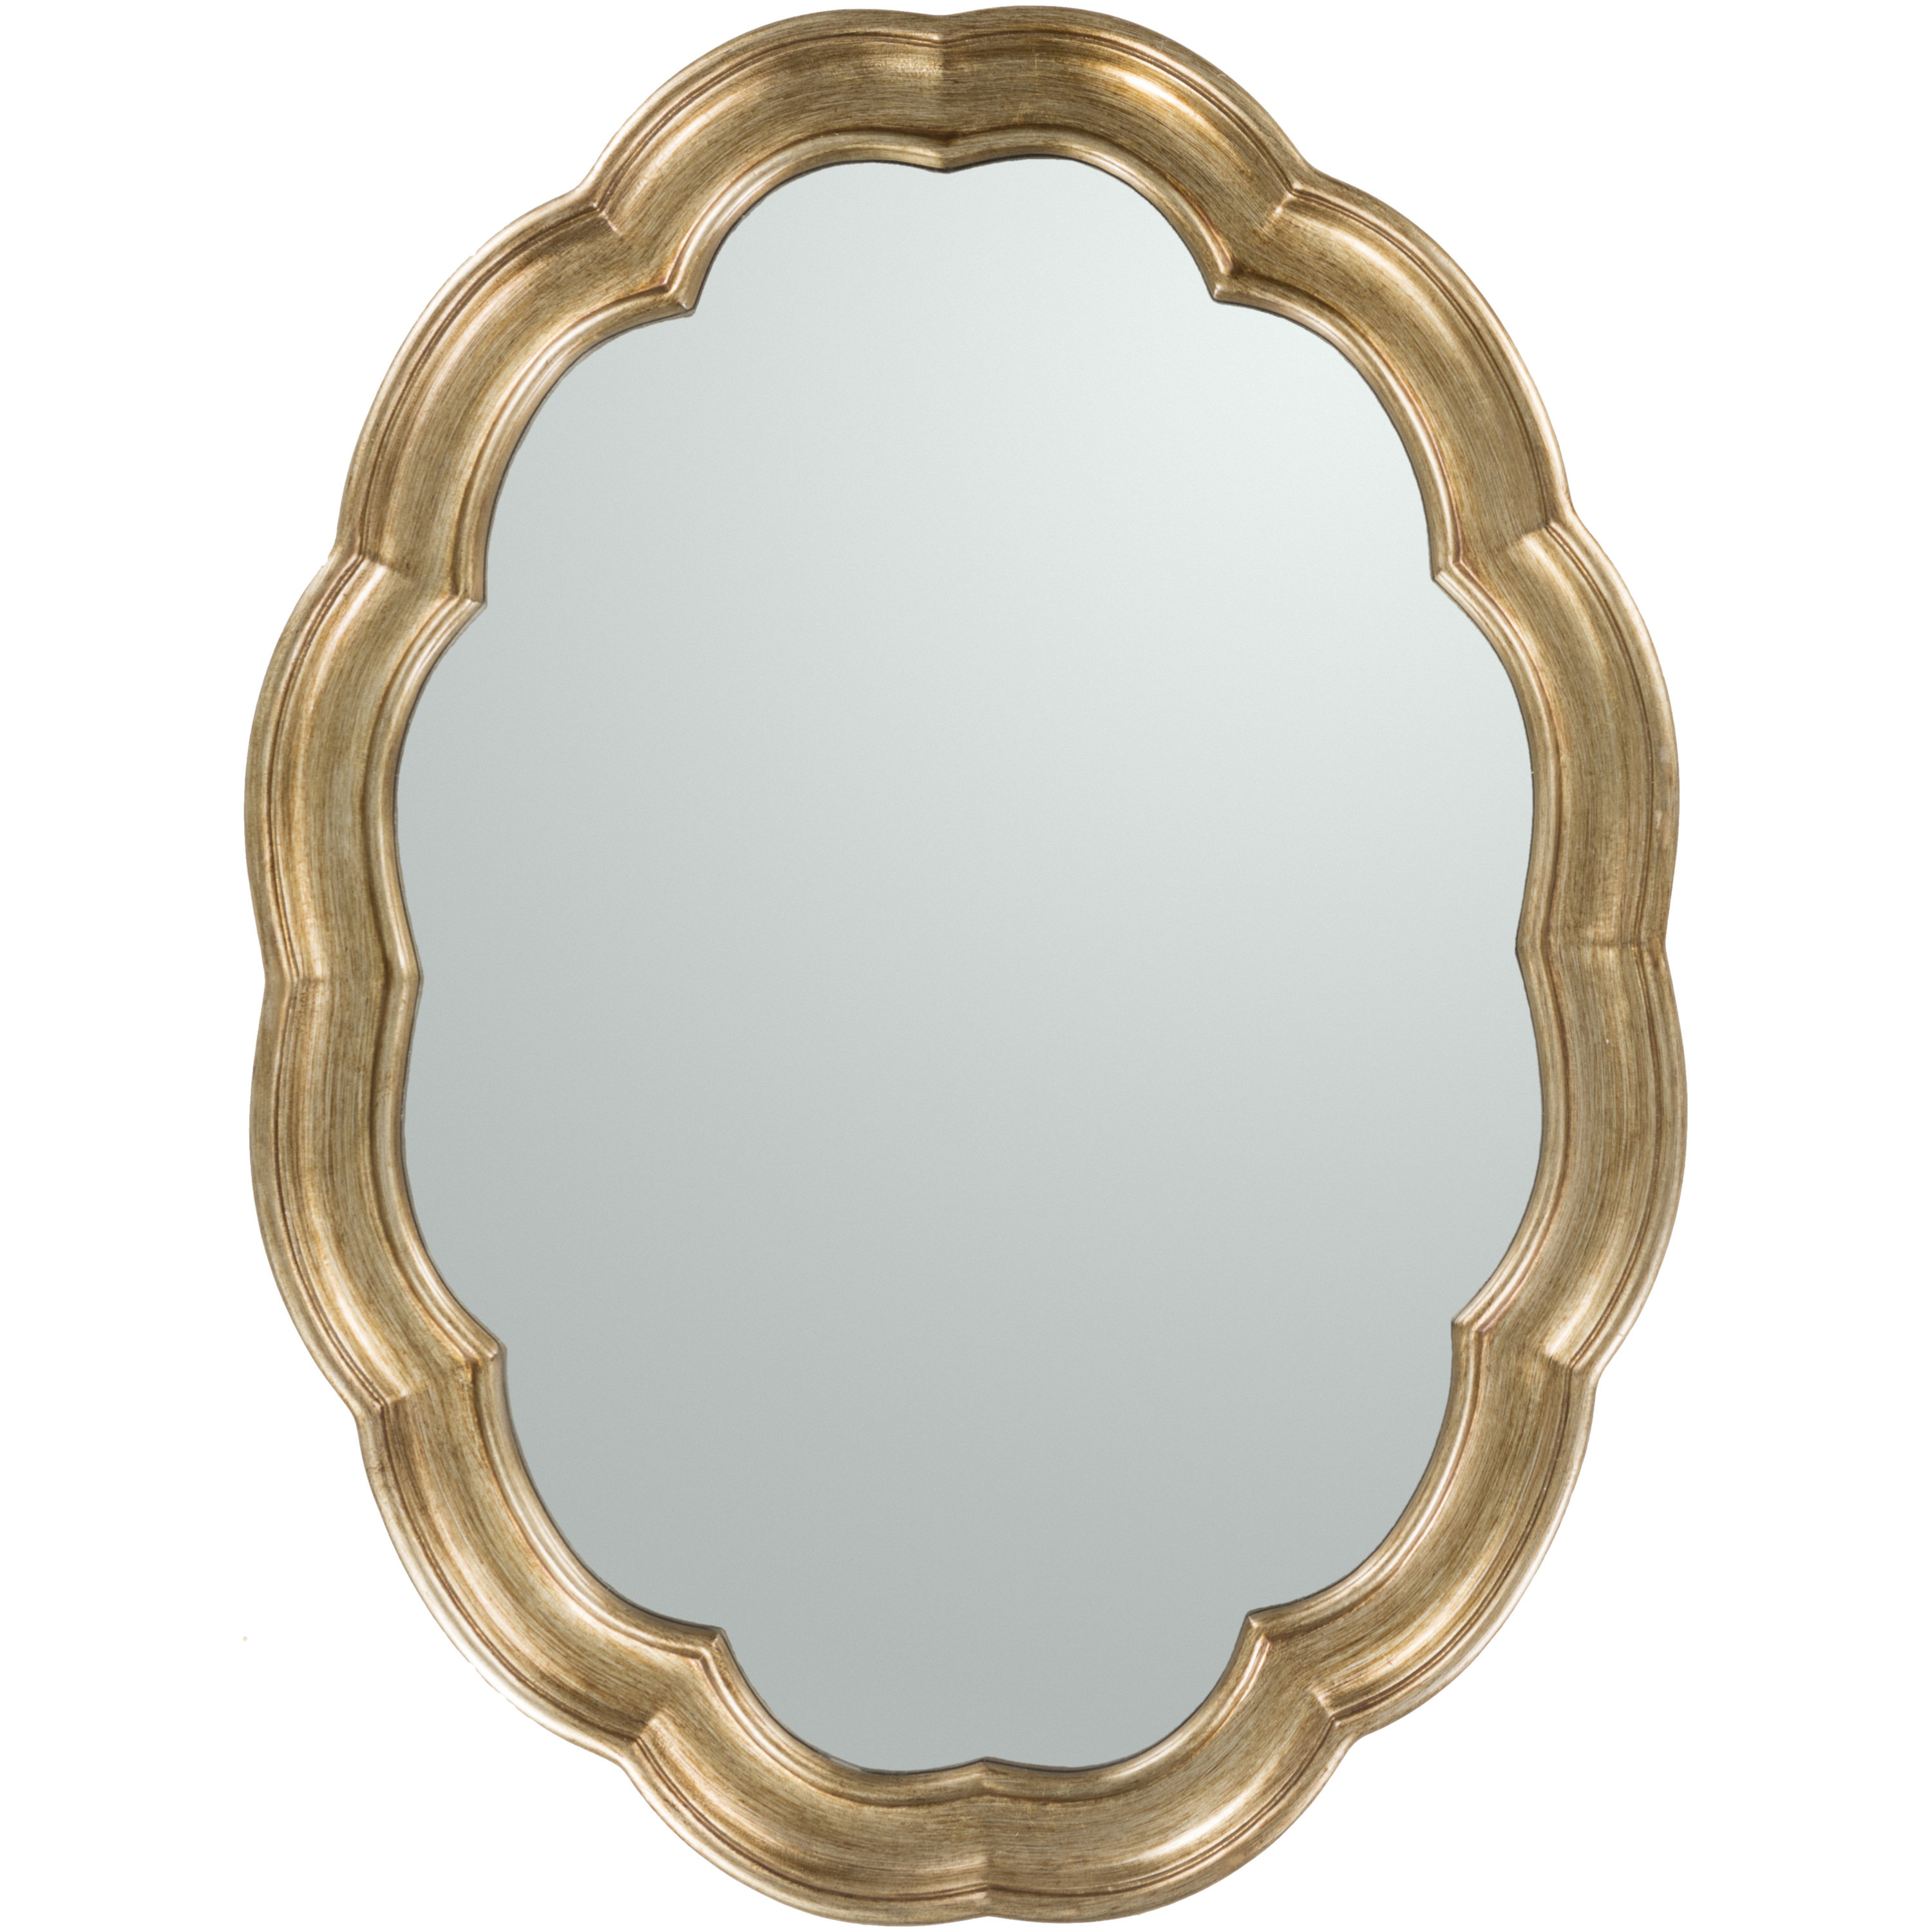 2020 Glam Oval Accent Wall Mirror For Oval Wood Wall Mirrors (View 4 of 20)